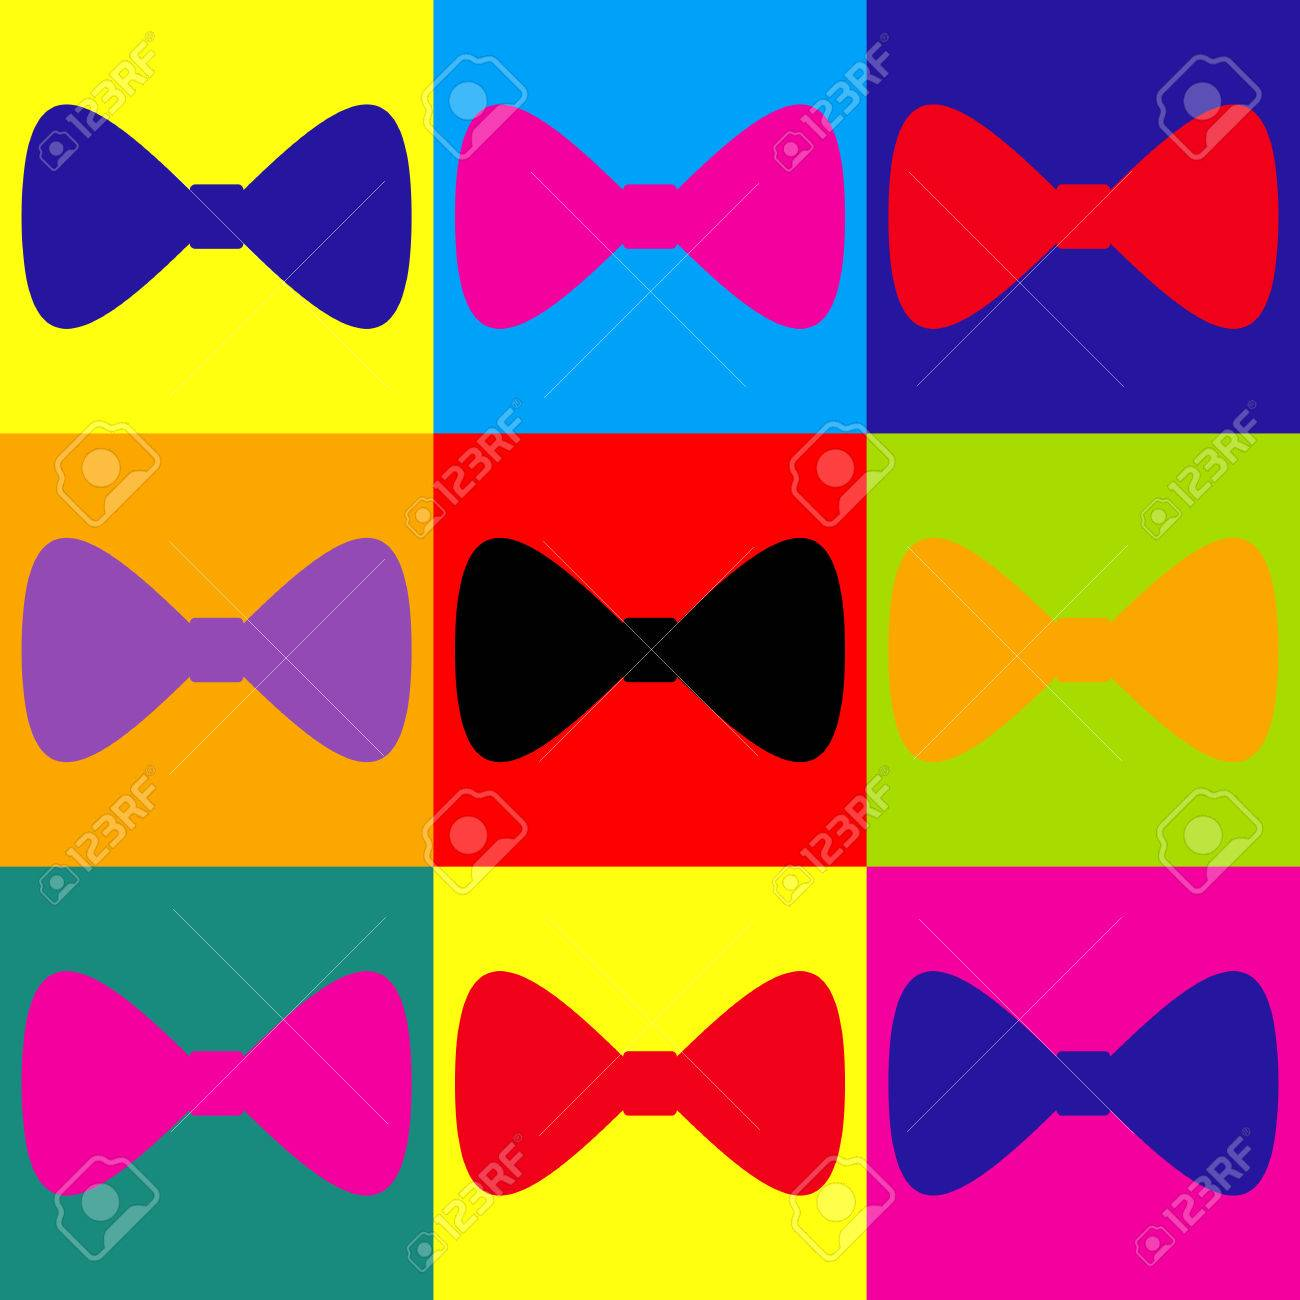 Bow tie icon pop art style colorful icons set royalty free bow tie icon pop art style colorful icons set stock vector 56830768 voltagebd Choice Image